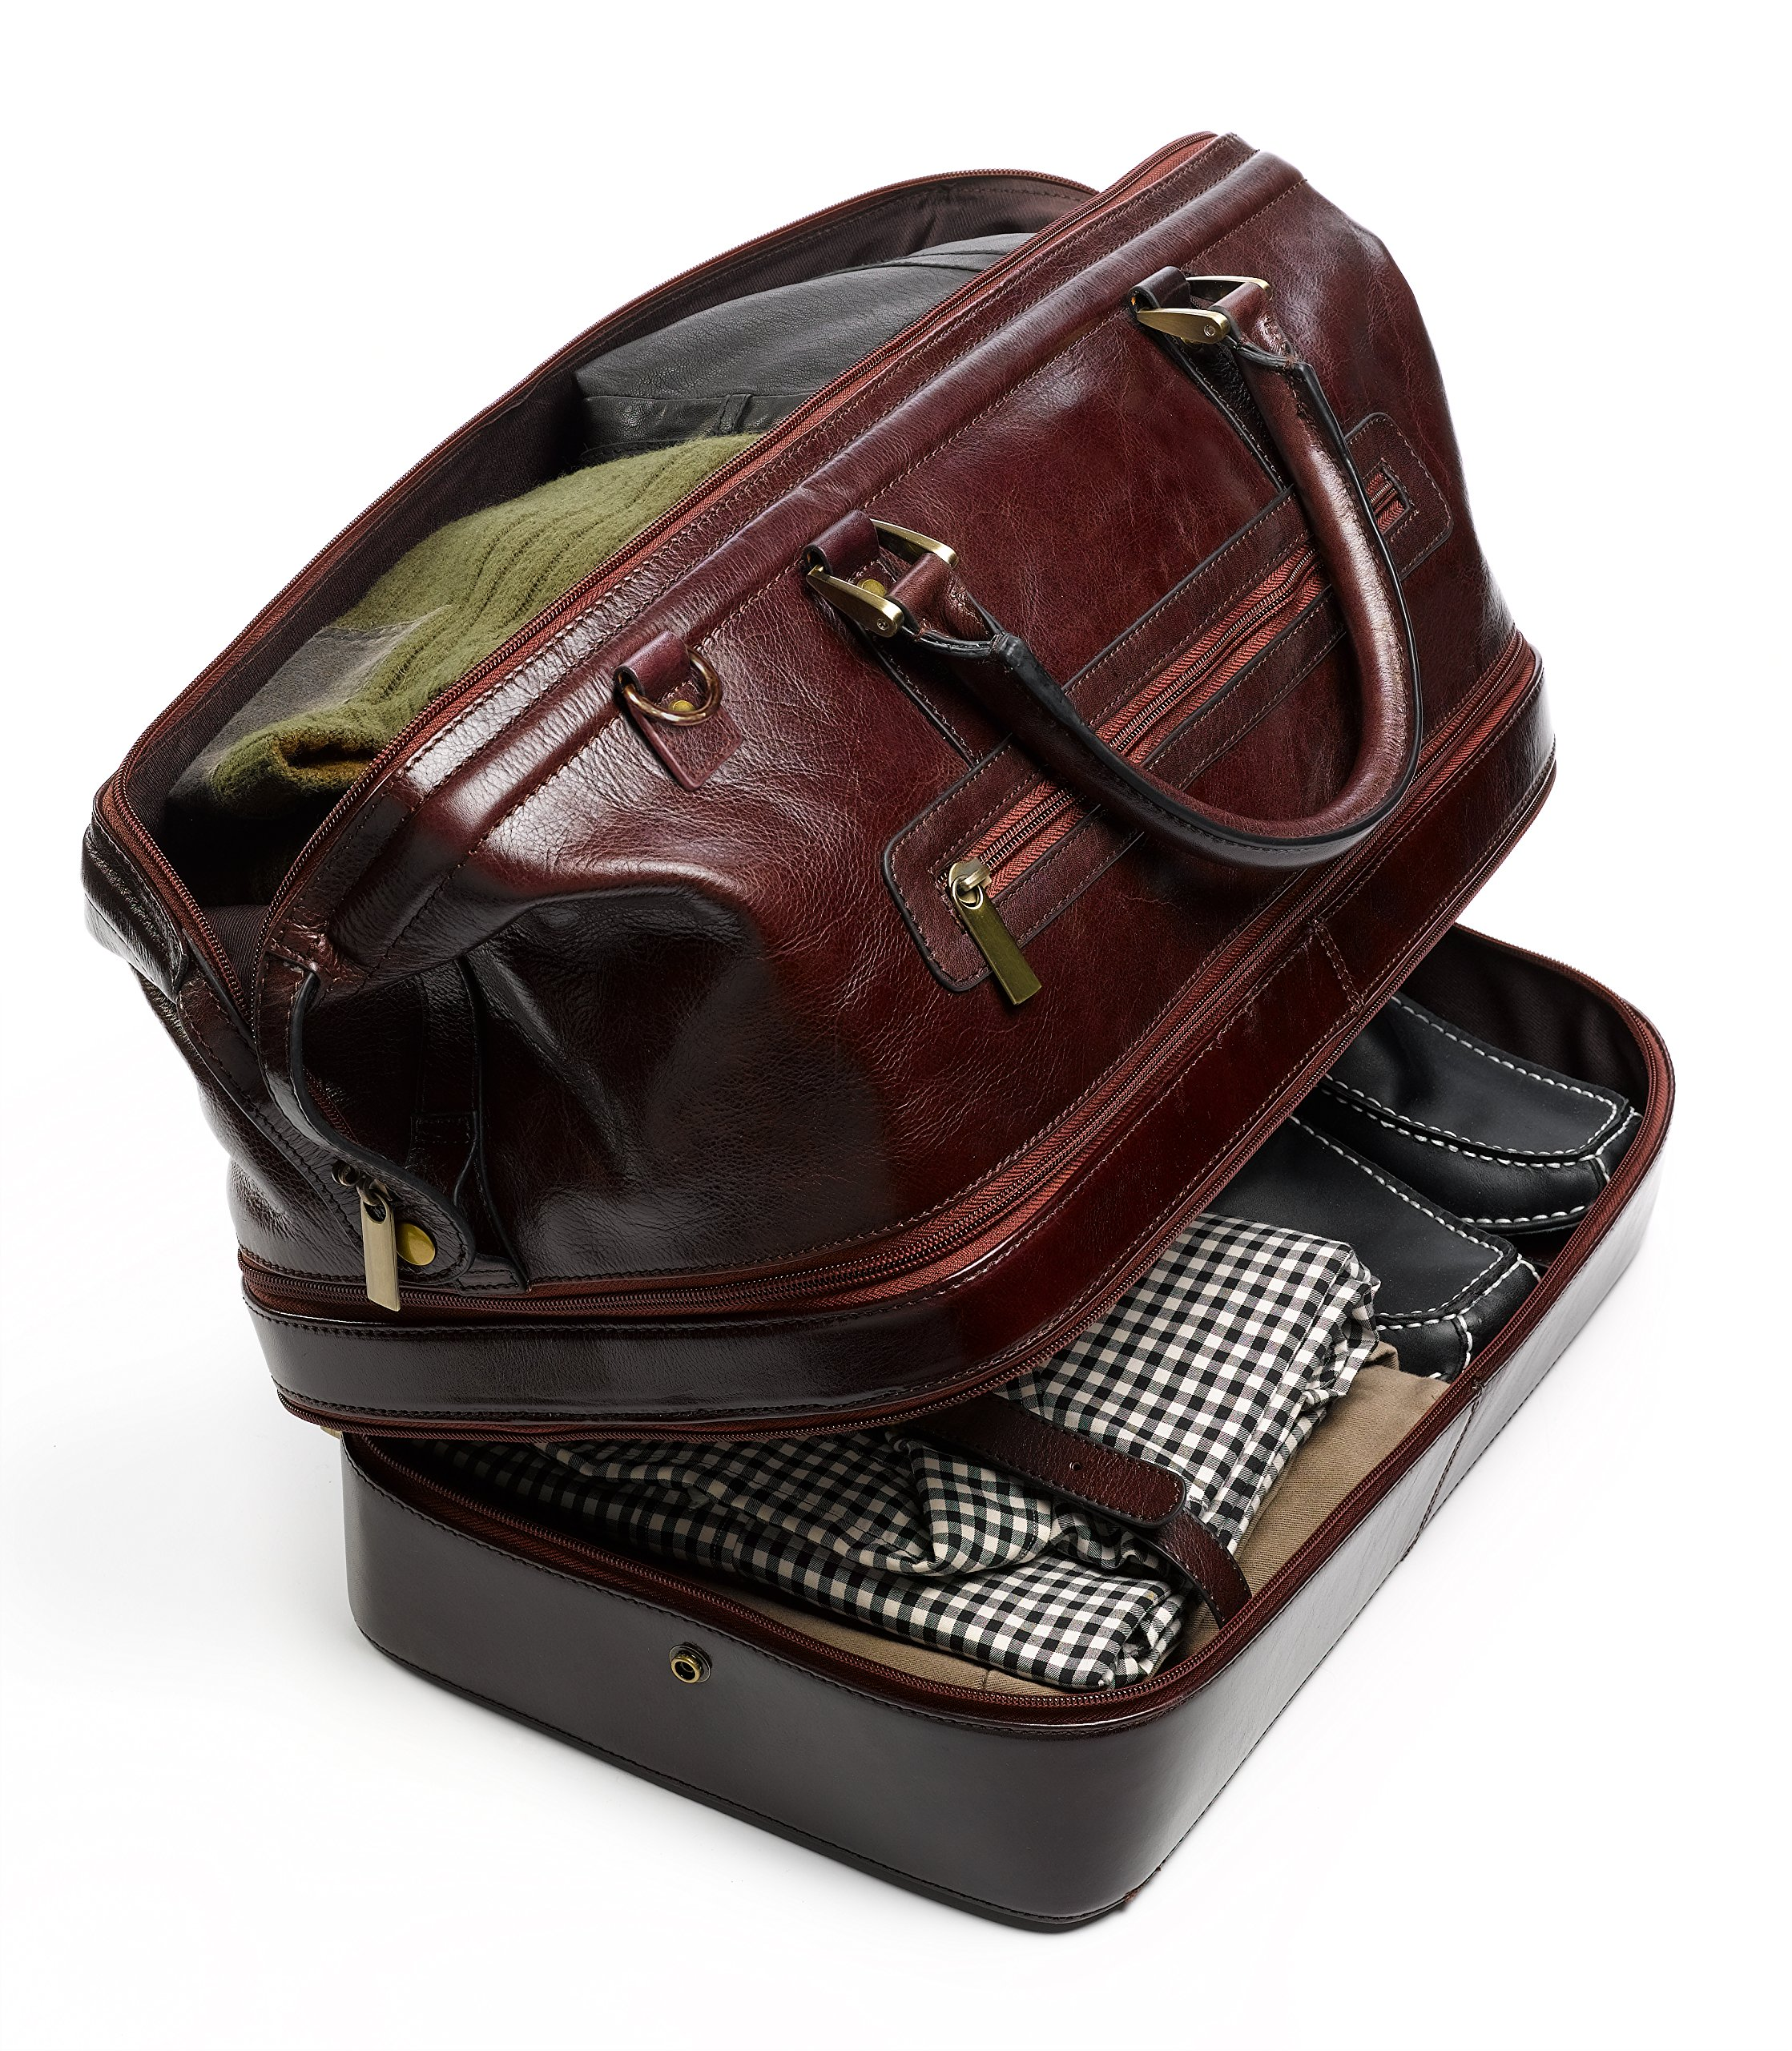 Leather Duffel Bag Weekender Travel Luggage with Shoe Compartment